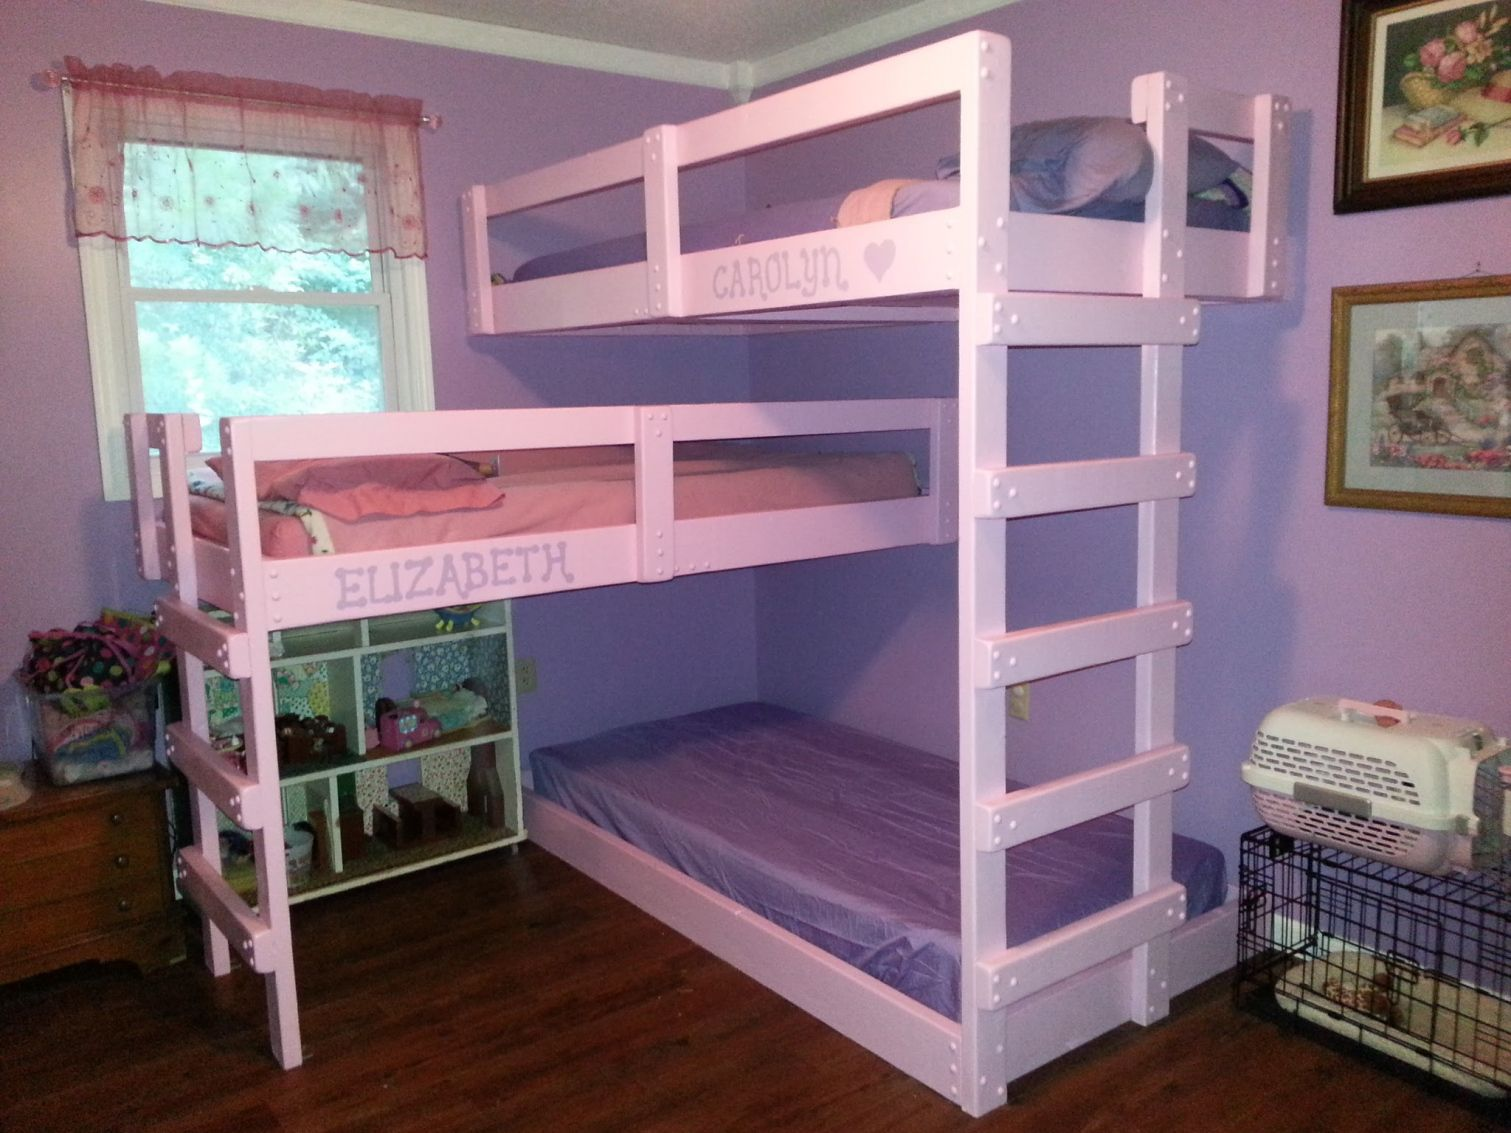 Fantastisch 30 Bunk Beds For Small Rooms   Interior Bedroom Paint Colors Check More At  Http://billiepiperfan.com/bunk Beds For Small Rooms/